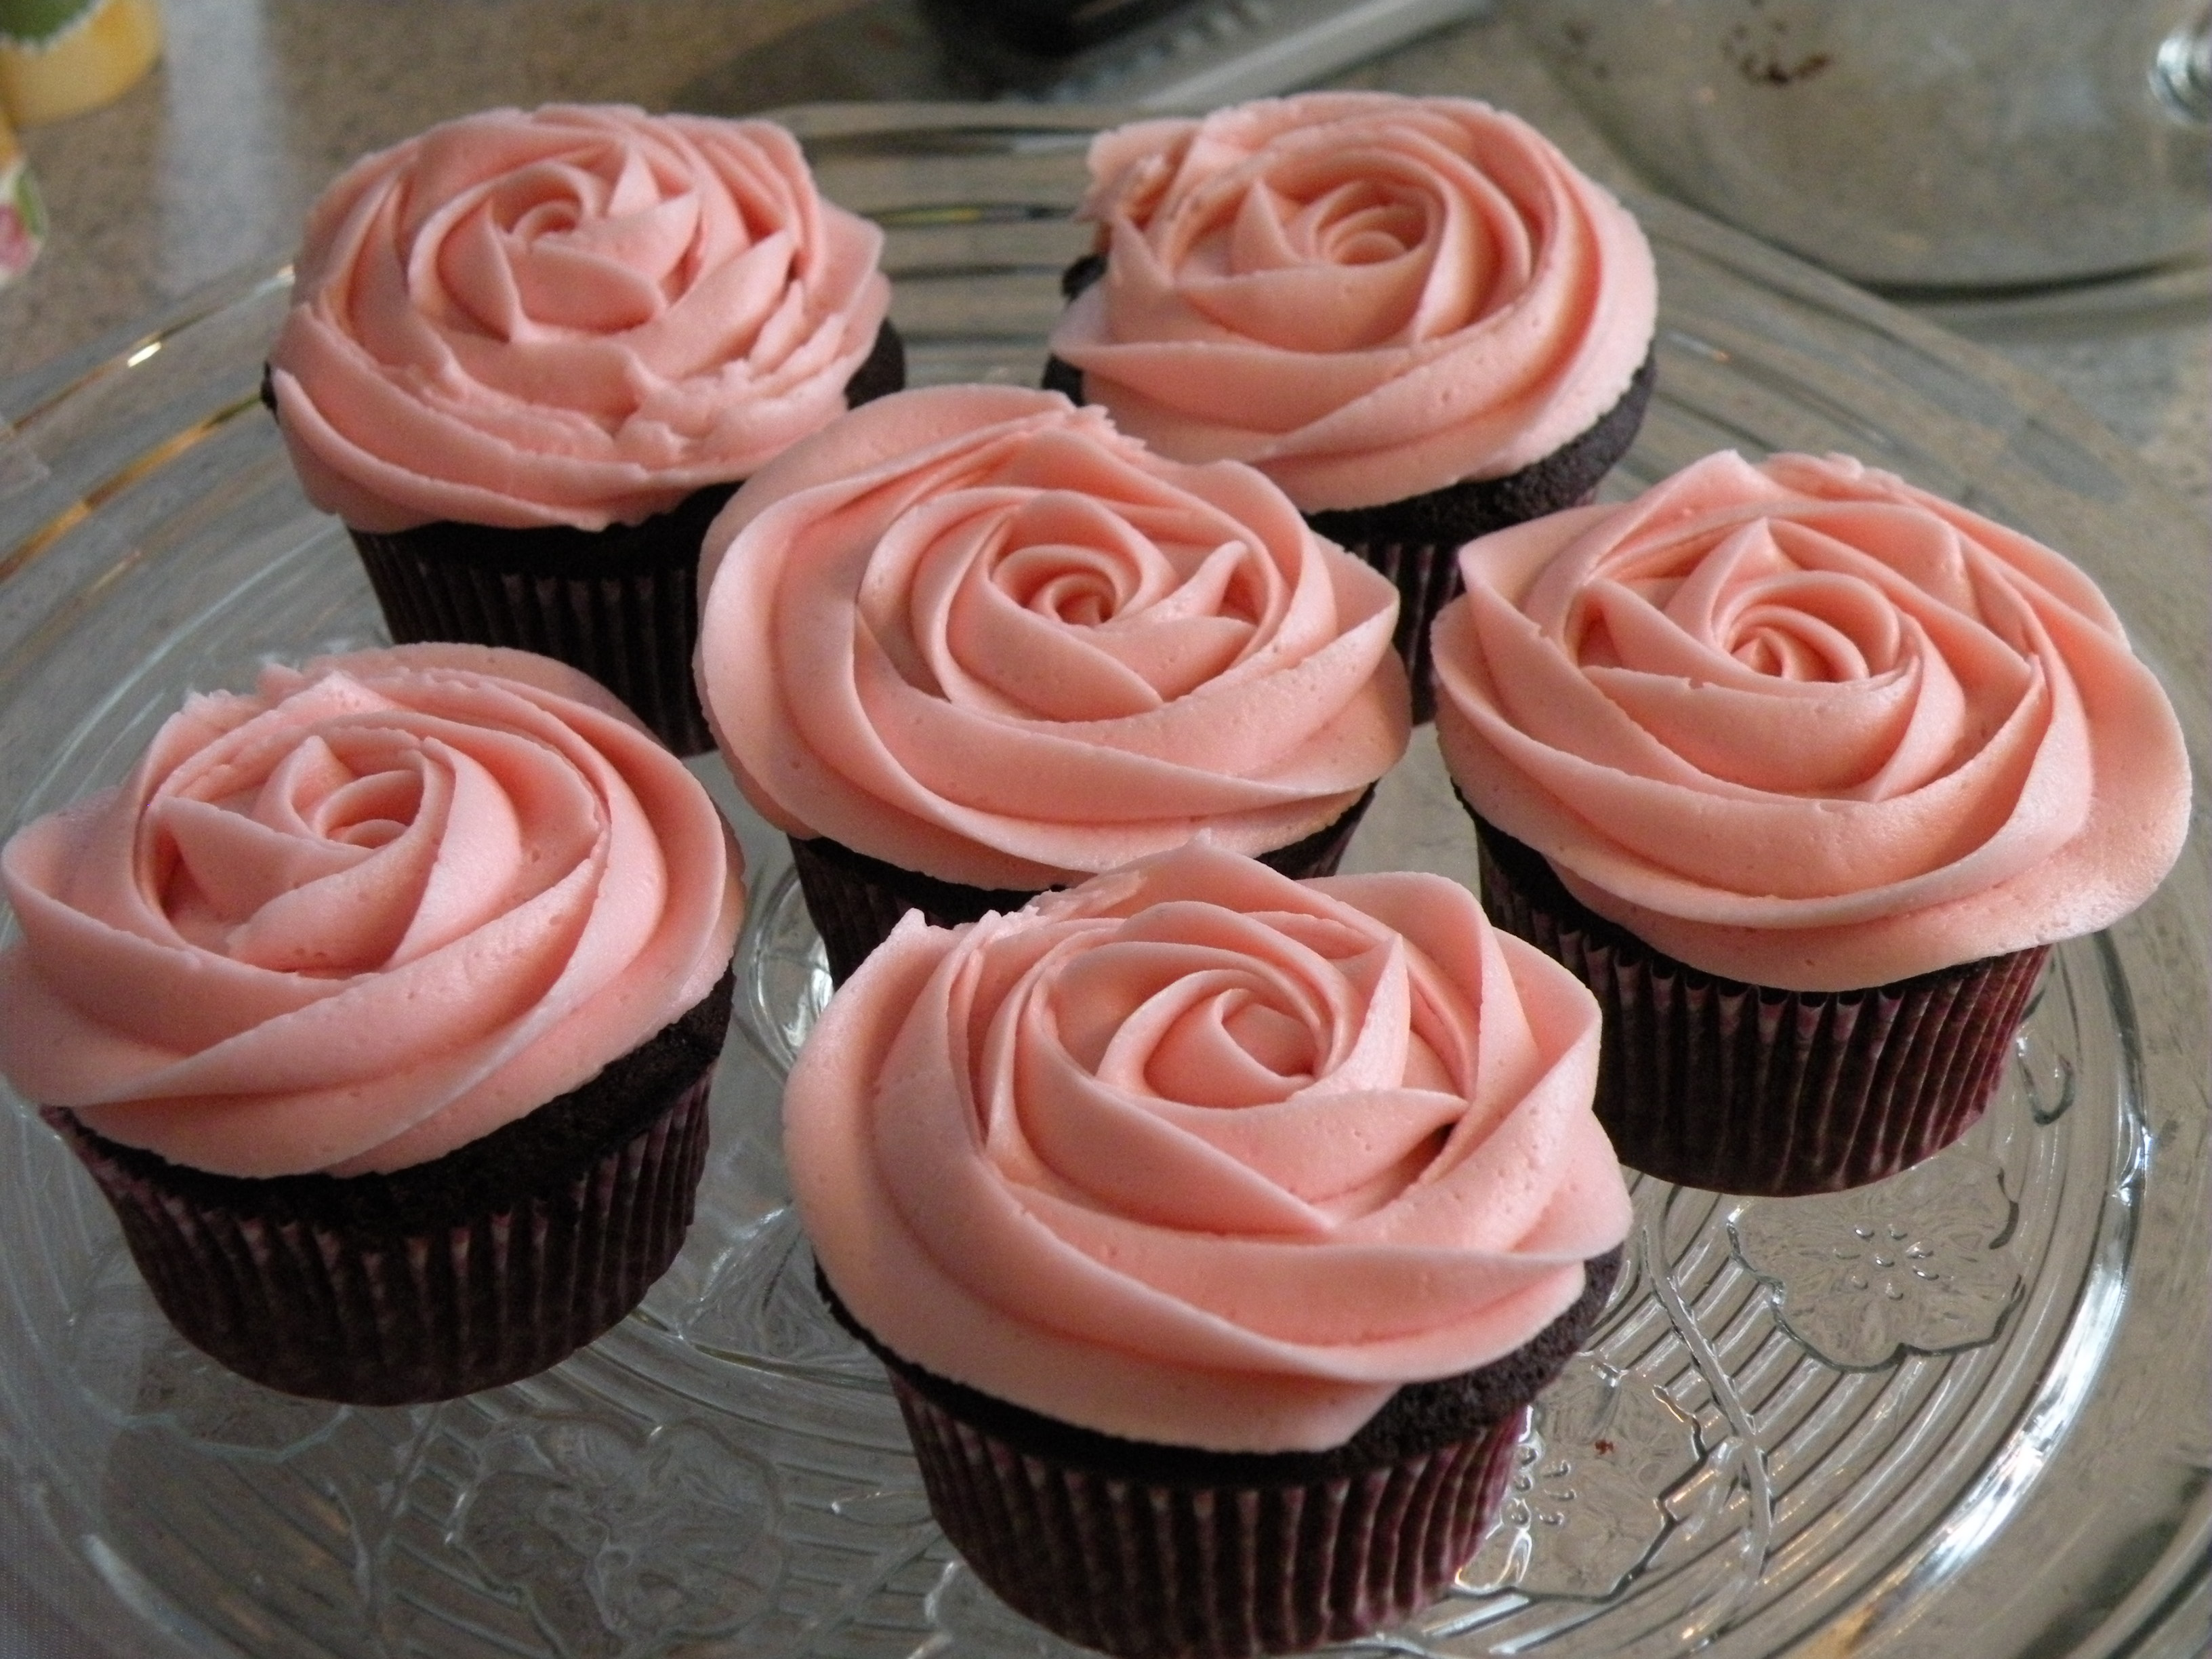 12 Photos of Cupcakes That Look Like Roses